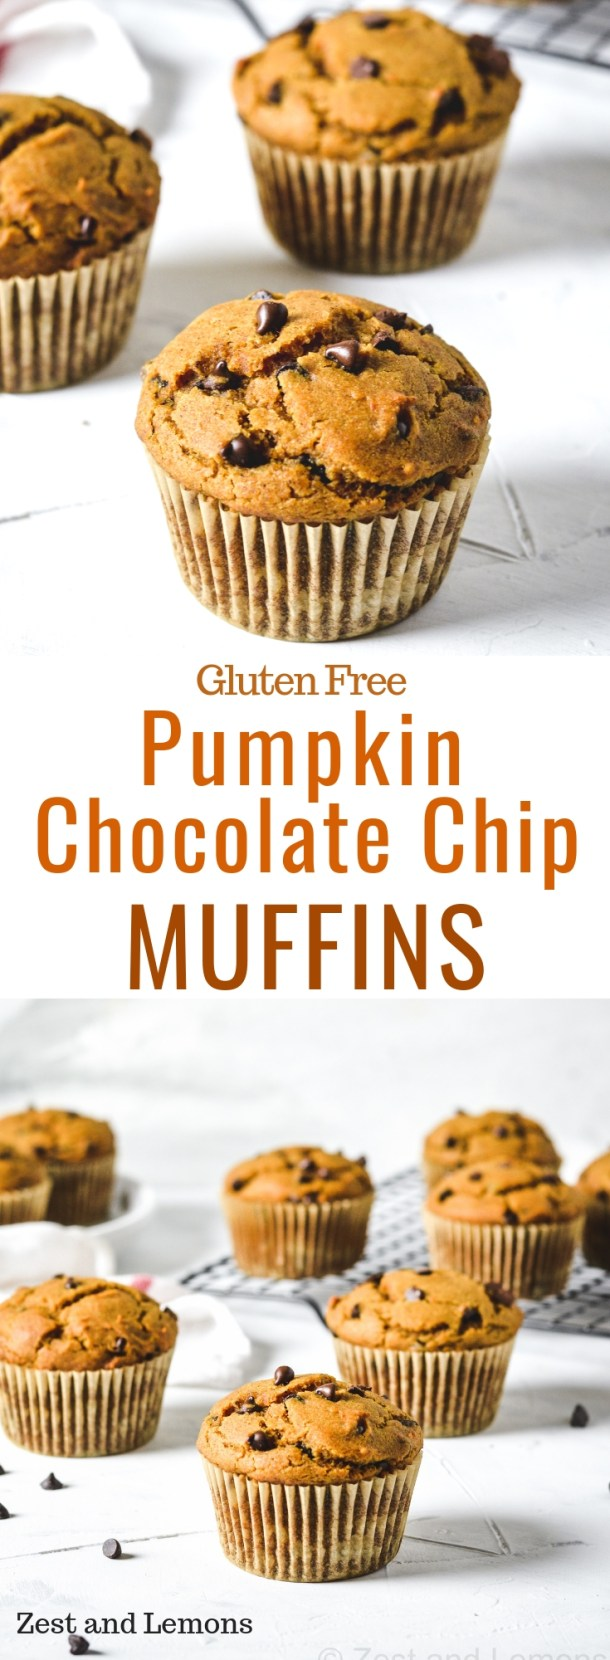 Gluten free pumpkin chocolate chip muffins. These muffins are thick, yet very moist and fluffy and are loaded with mini chocolate chips - Zest and Lemons